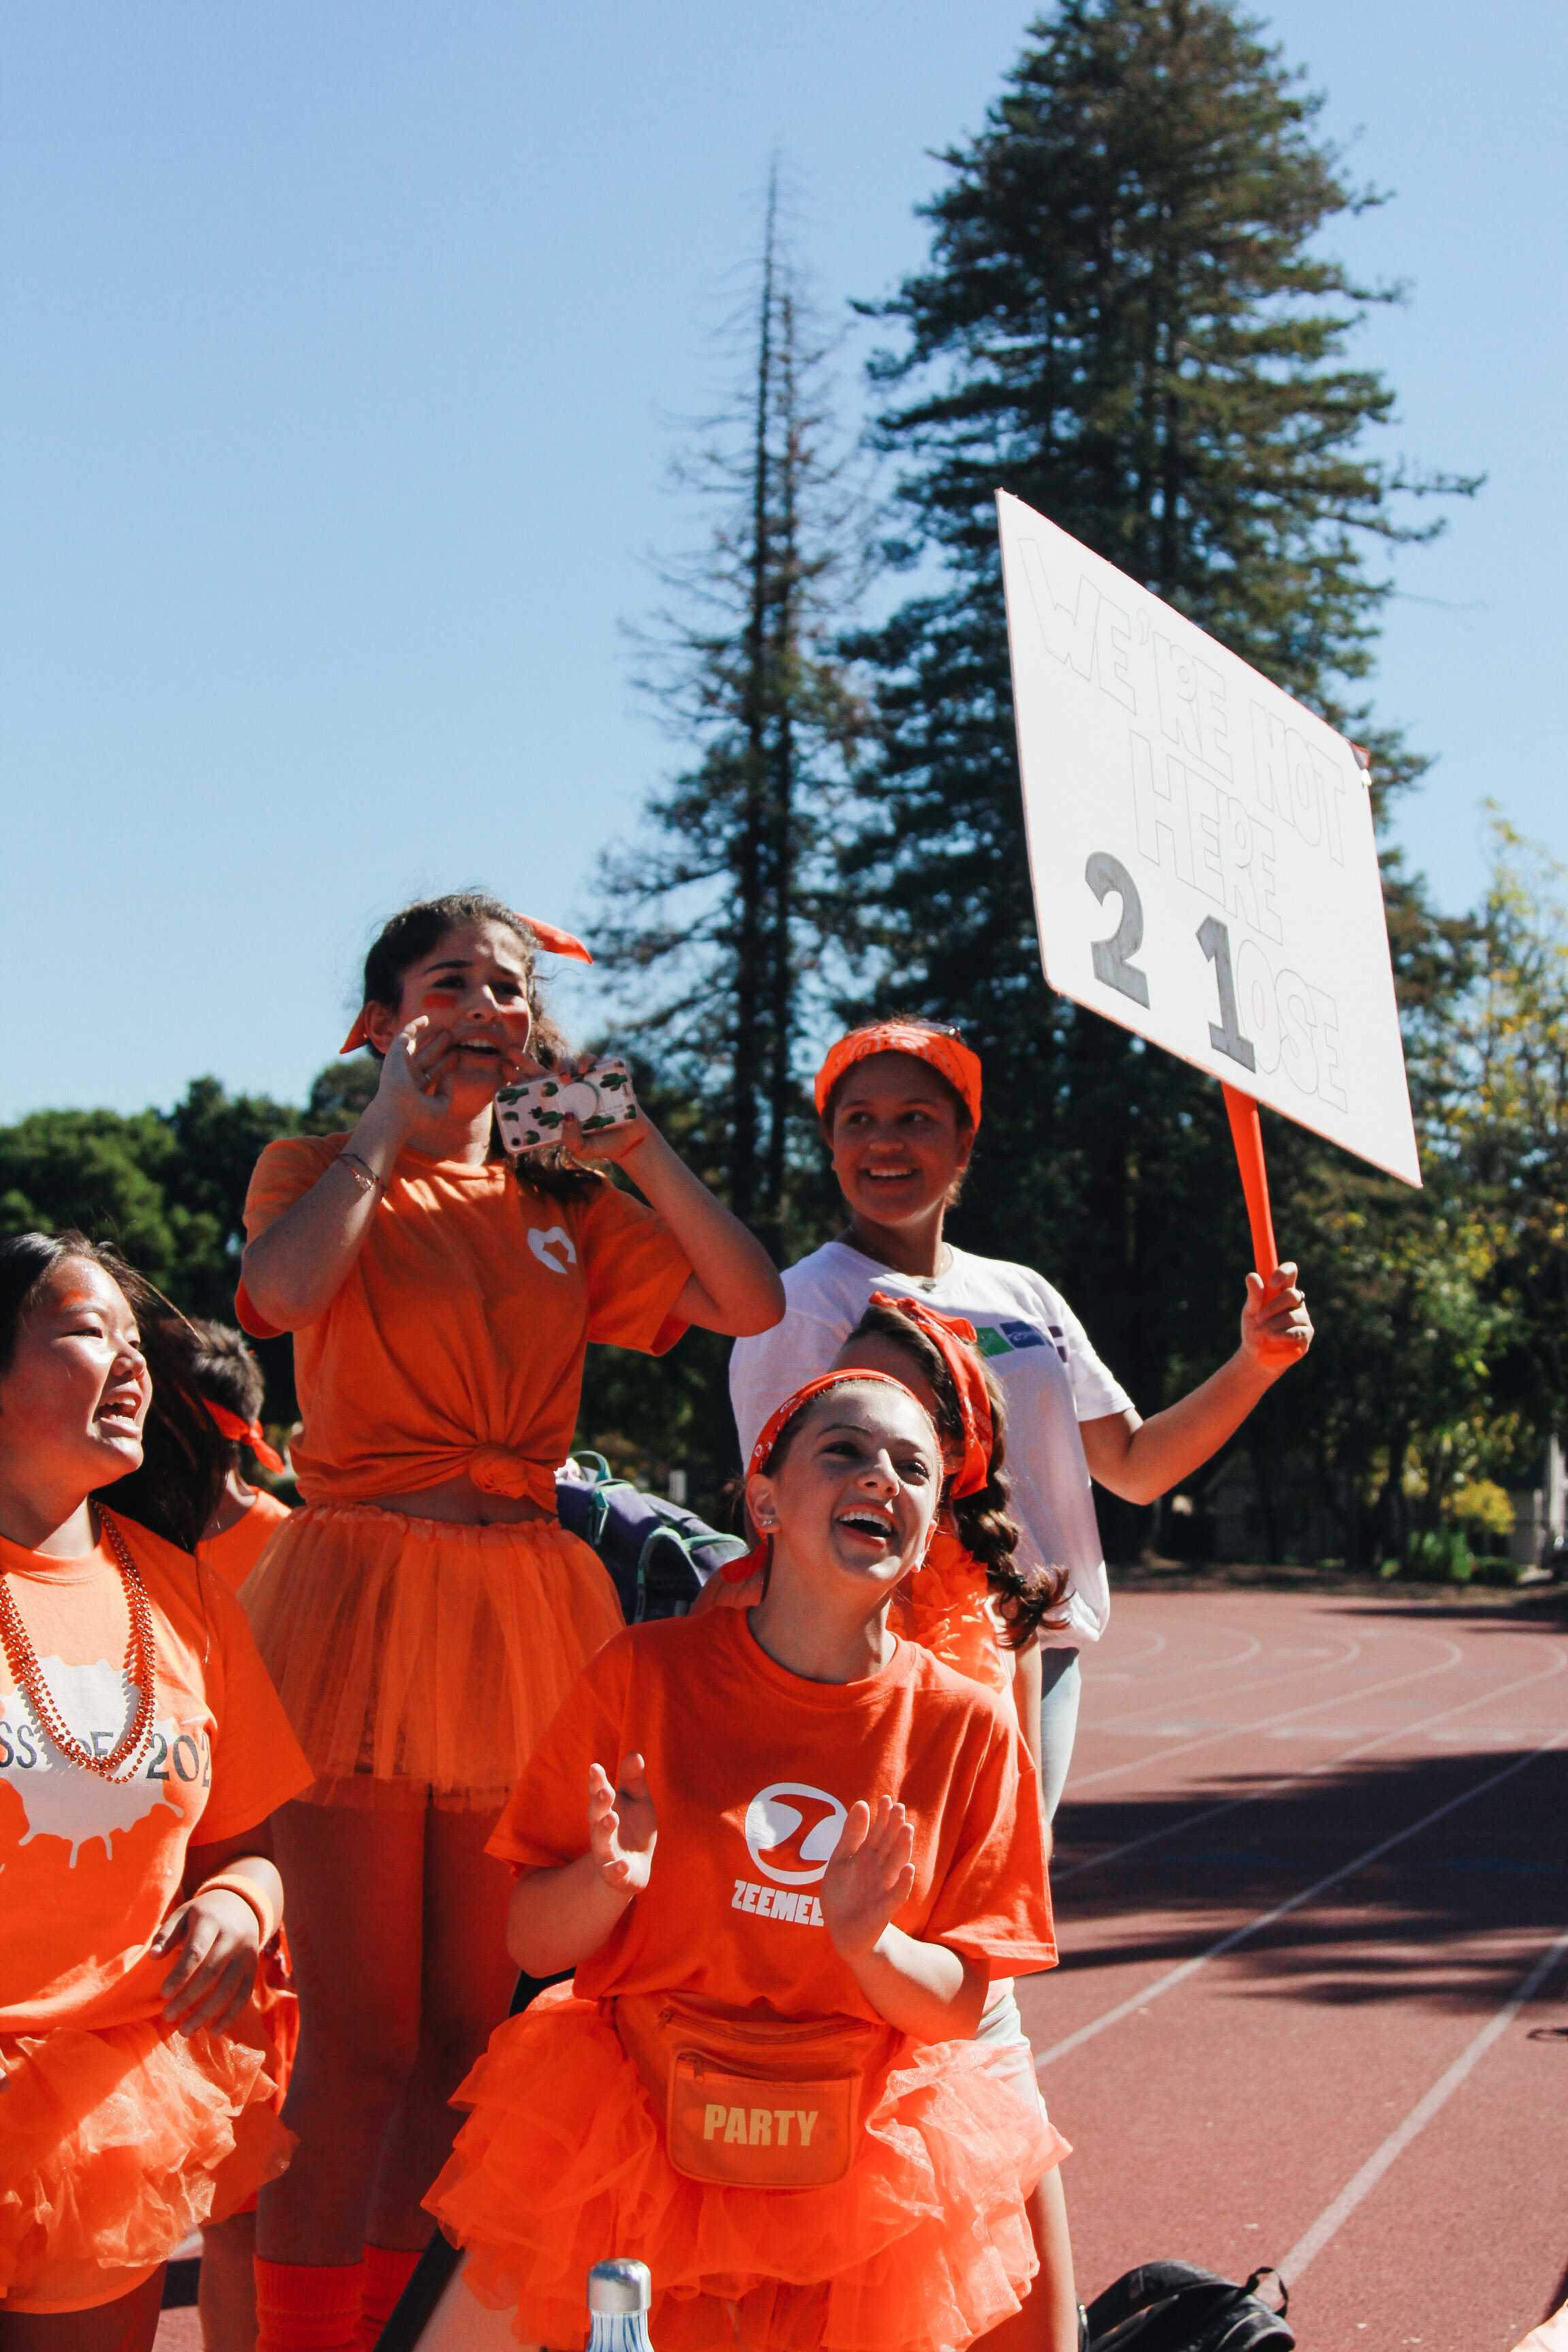 Freshmen cheer on their classmates. Photo Credit: Angelina Wang